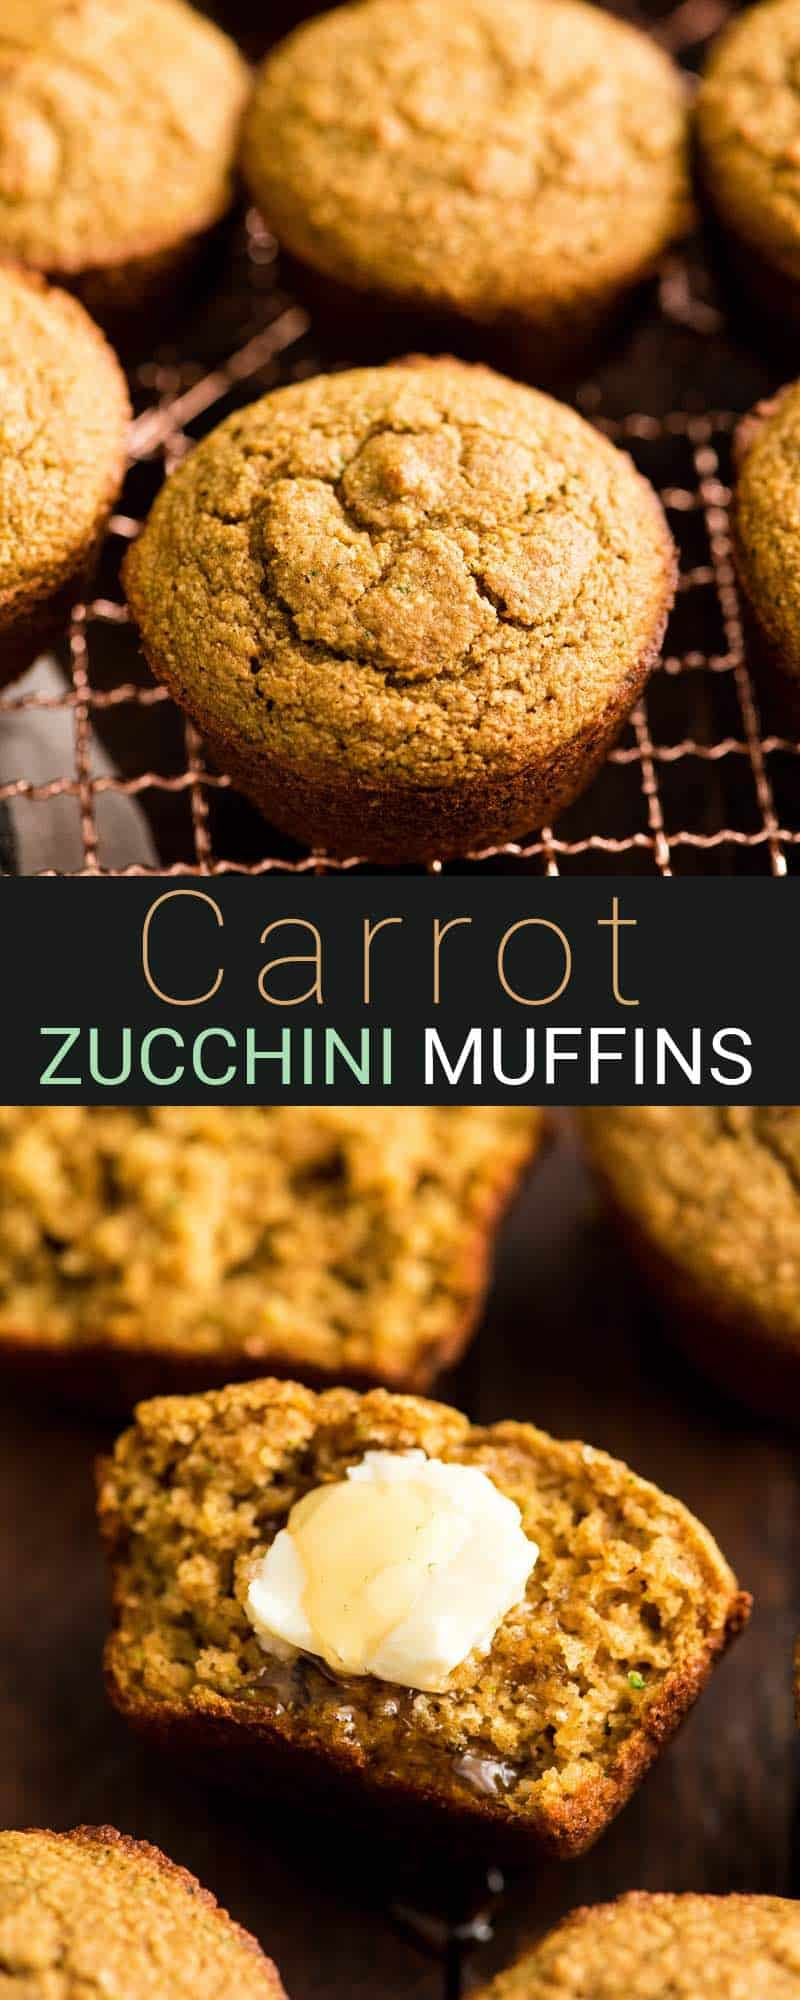 These Carrot Zucchini Muffins are made with whole wheat flour and oatmeal! They are the perfect healthy breakfast recipe that's loaded with nutrition! AKA: Baby Muffins! #babymuffins #zucchinimuffins #carrotmuffins #muffins #healthy #breakfast #recipe